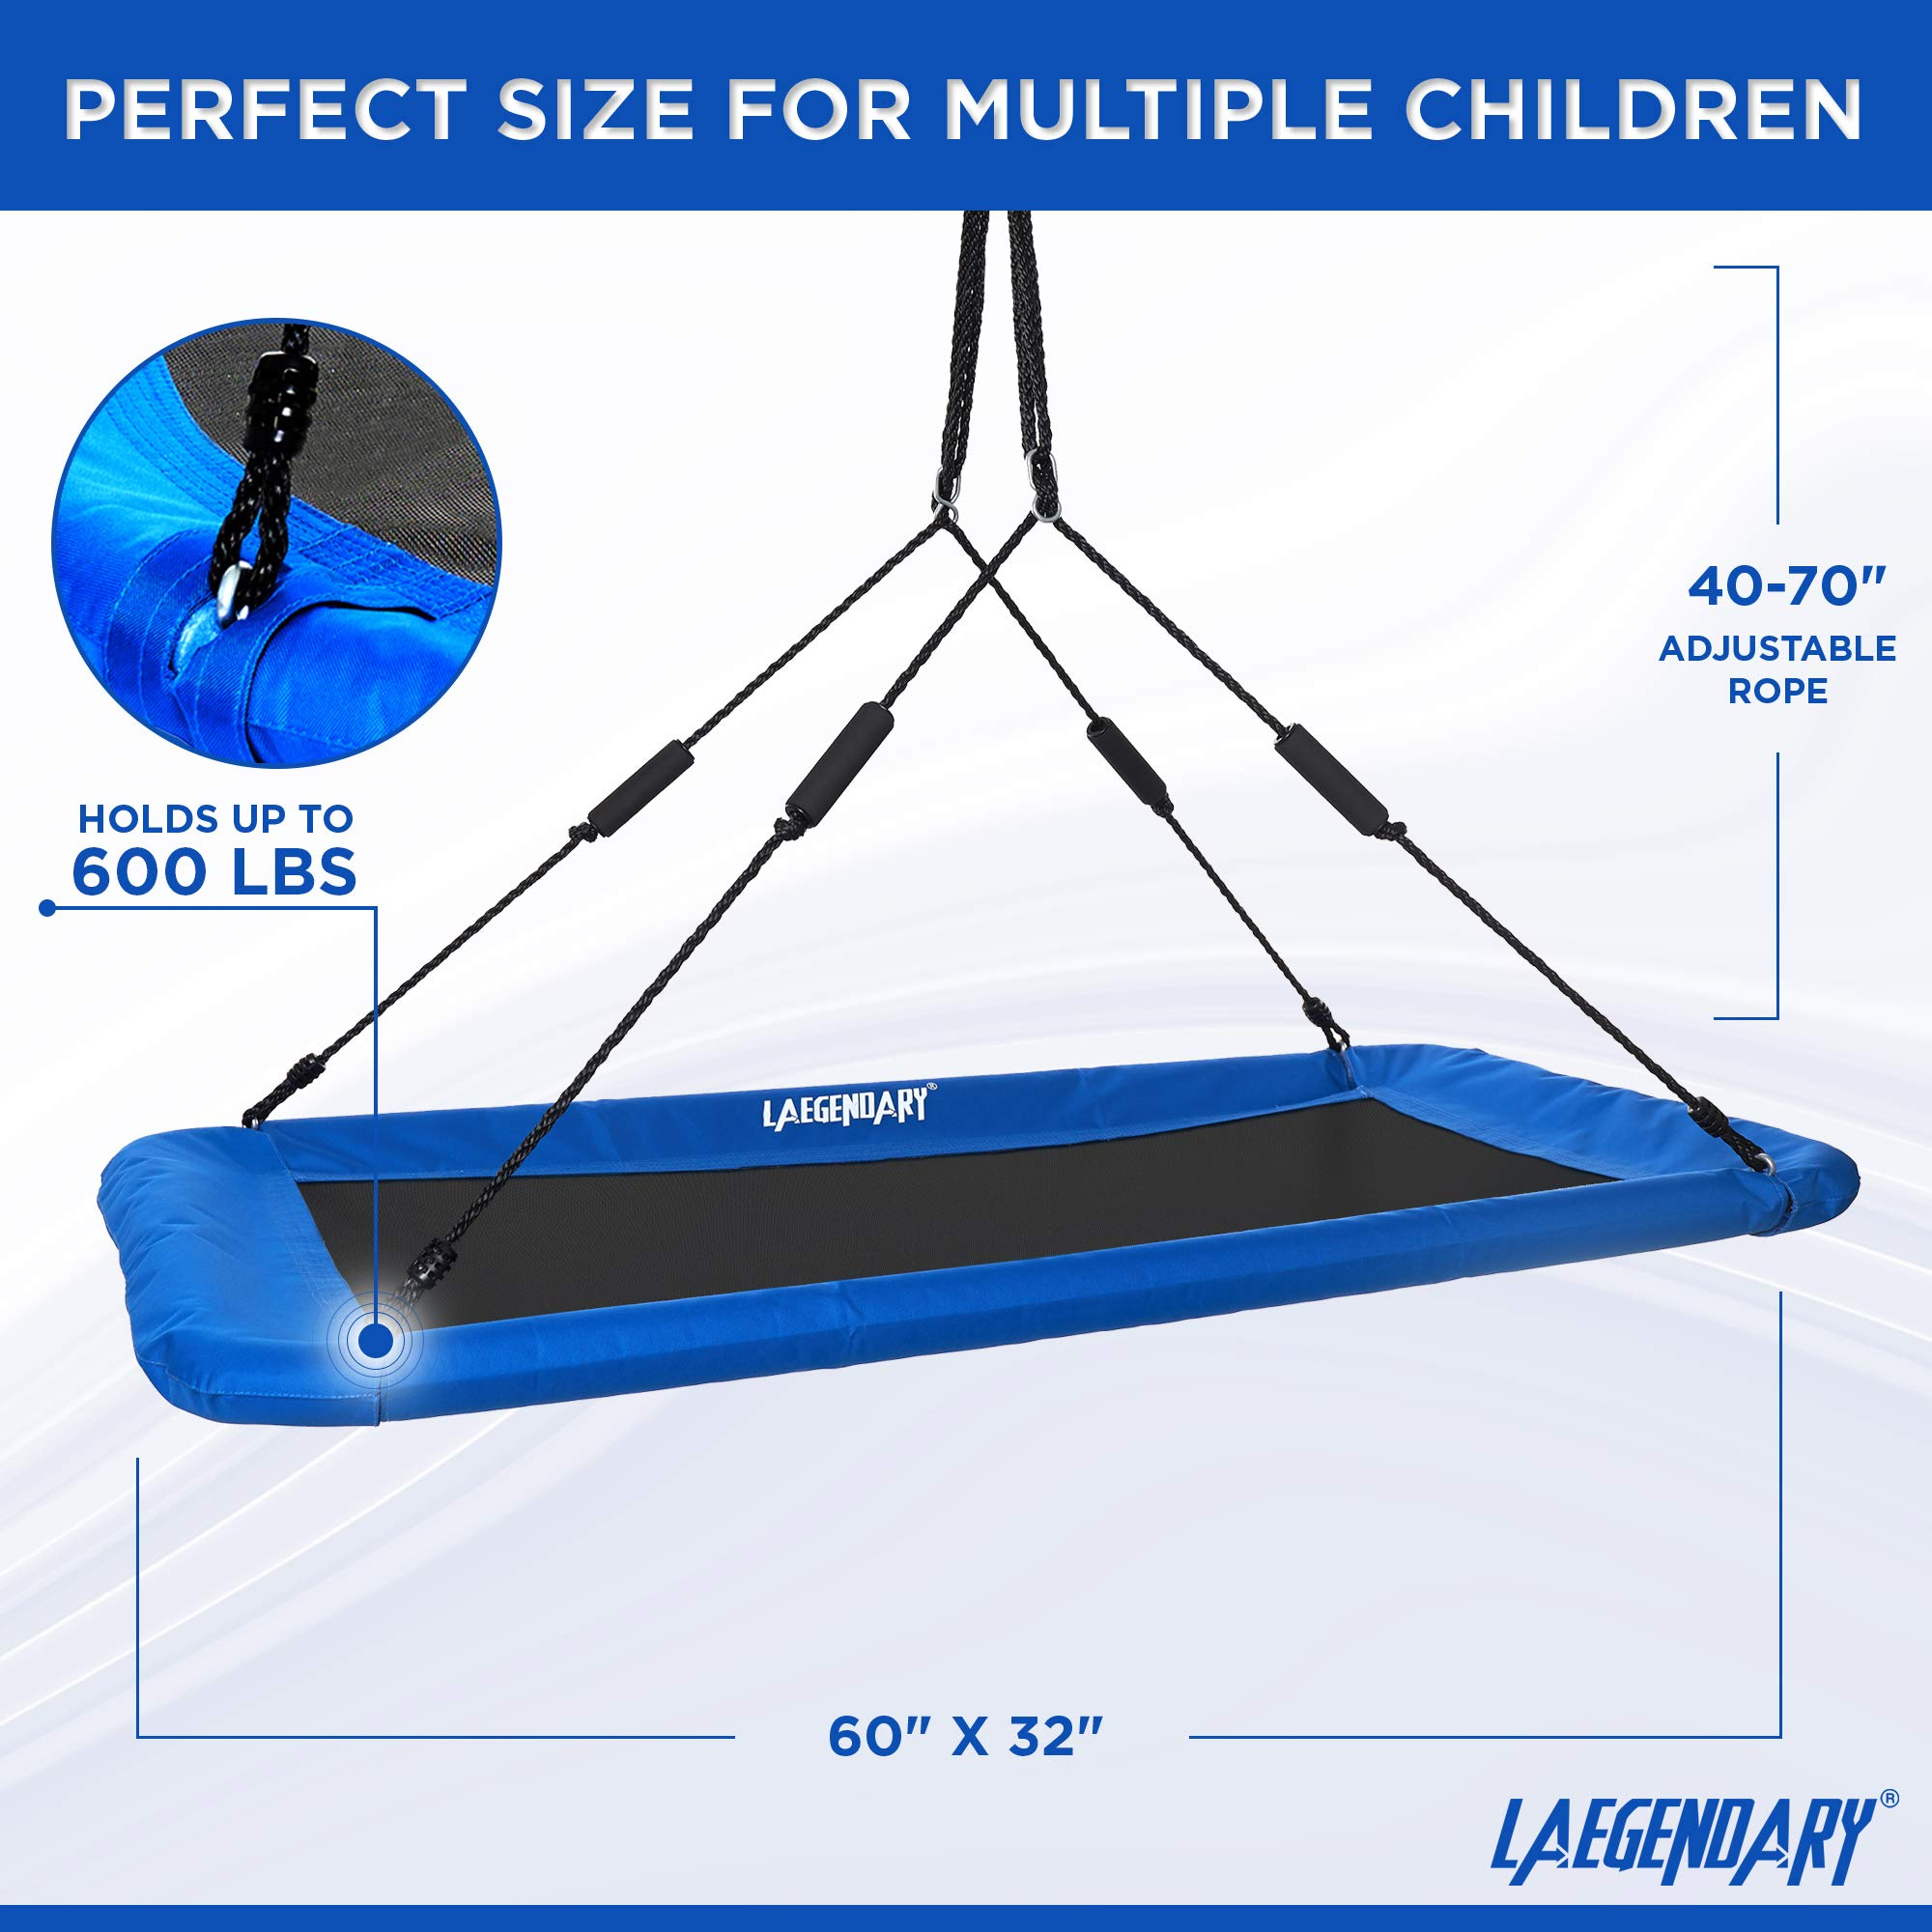 60'' Giant Platform Tree Swing for Kids and Adults | Flying Outdoor Indoor Saucer Hammock | Surf Tire Swingset Accessories Toys | 2 Tree Straps, 2 Carabiners, 1 Swivel | 600 Lb Capacity Yard Swings Set by LÆGENDARY (Image #4)